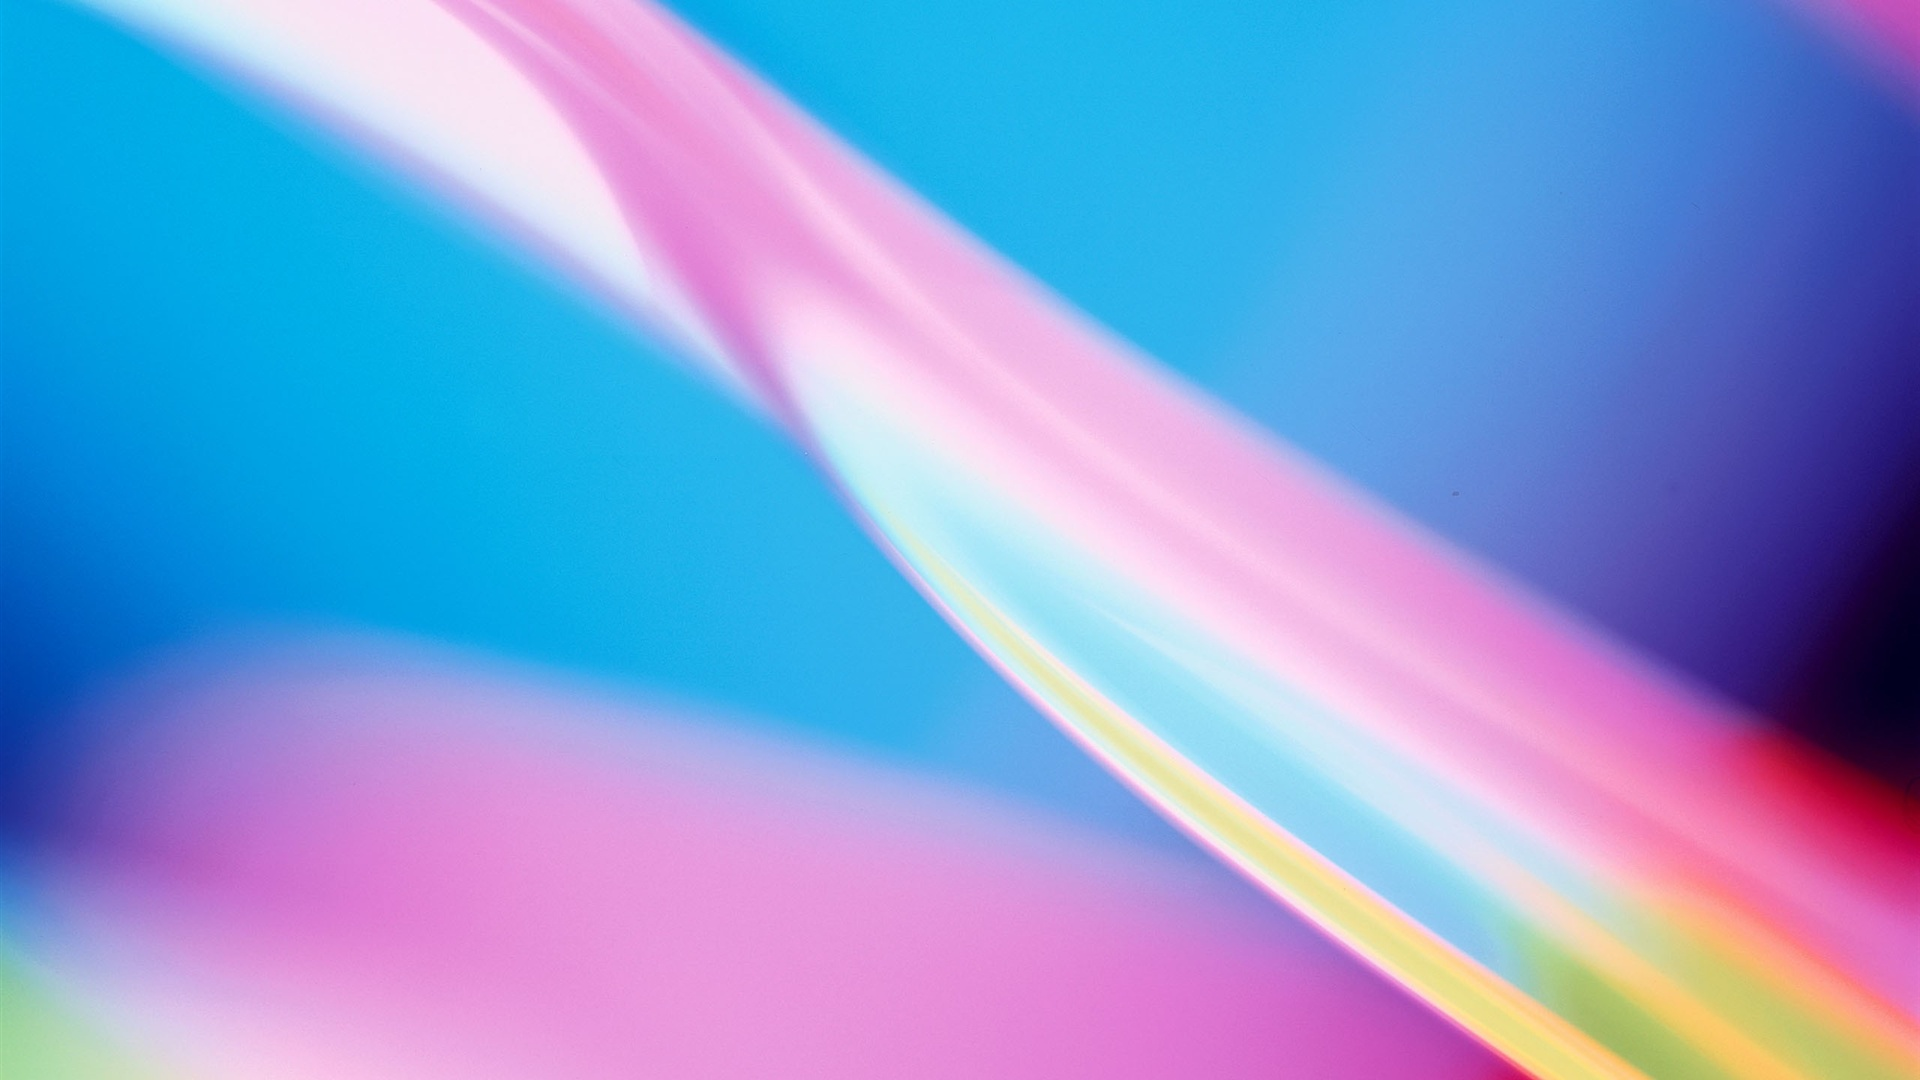 Wallpaper Color Pink Blue Abstract 2560x1600 Hd Picture Image